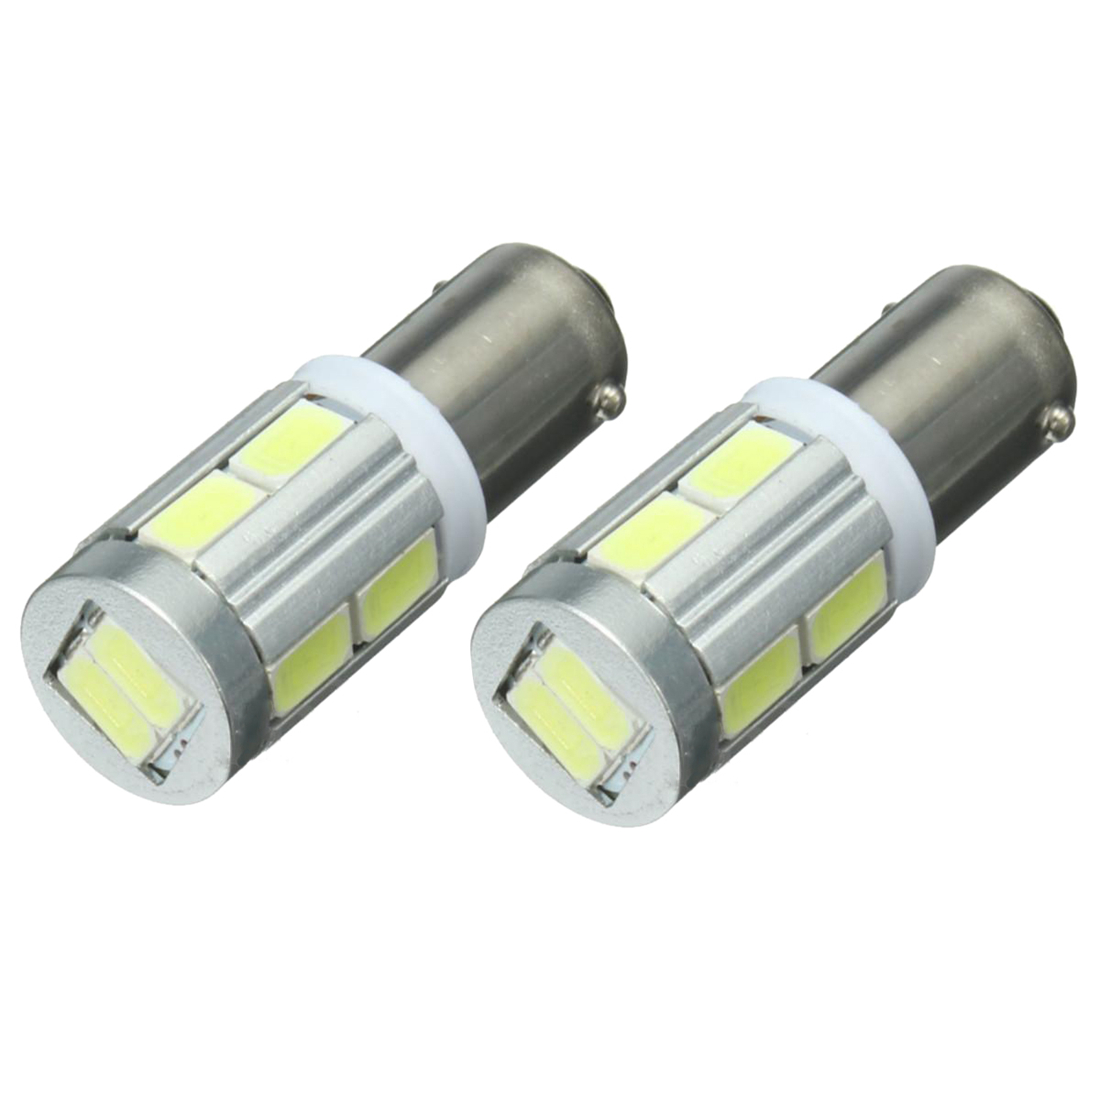 2x Universal BA9S H6W 10SMD LED Sidelight Bulbs Canbus Error Free 6000k White 2pcs brand new high quality superb error free 5050 smd 360 degrees led backup reverse light bulbs t15 for jeep grand cherokee